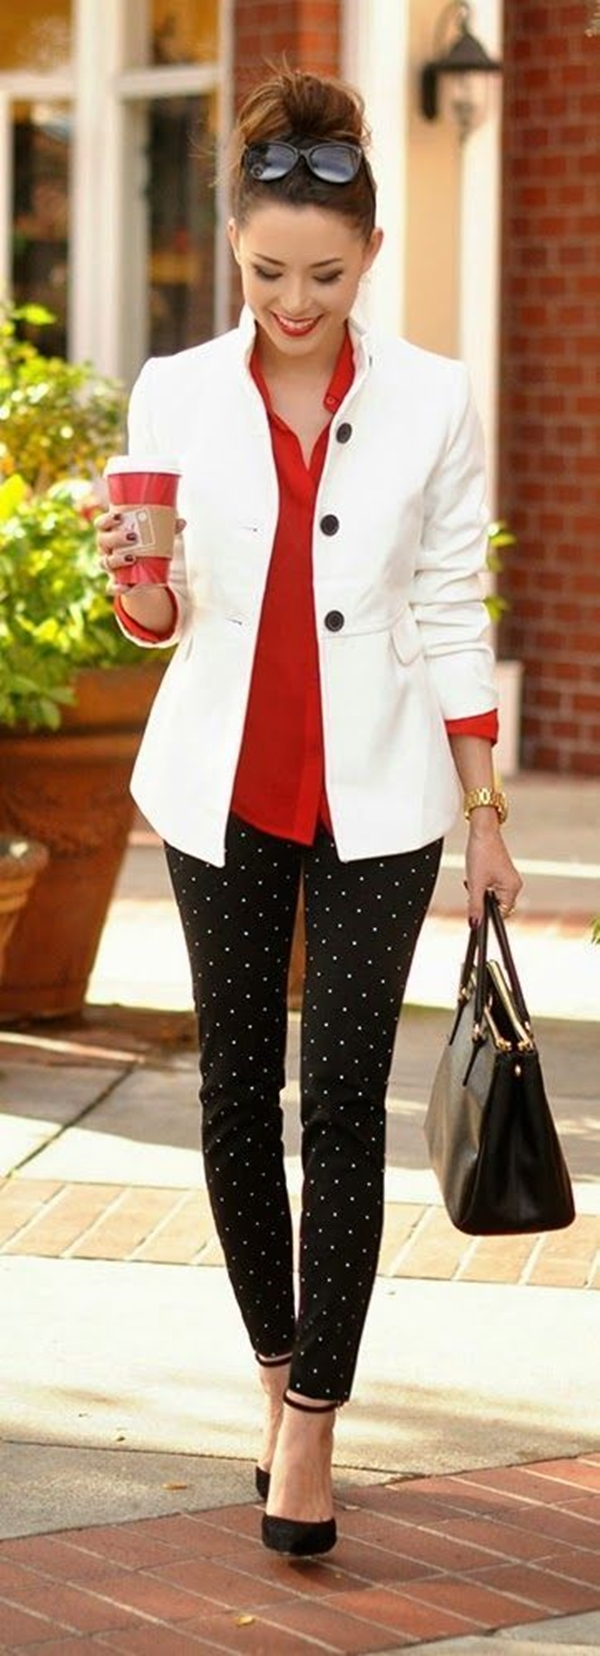 outfits-with-blazer-for-office-women-10